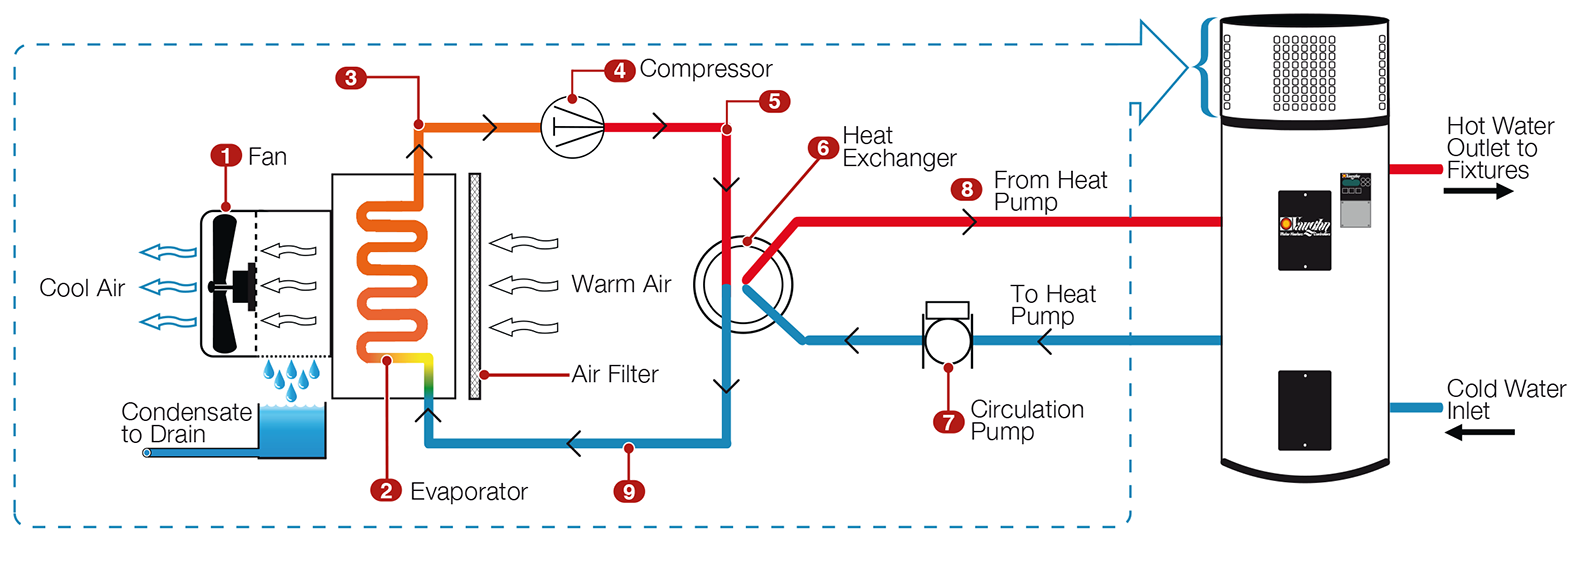 Boiler Electrical Wiring Diagram Libraries Schematic Hot Water Simple Posthot Boilers Home Heating Diagrams